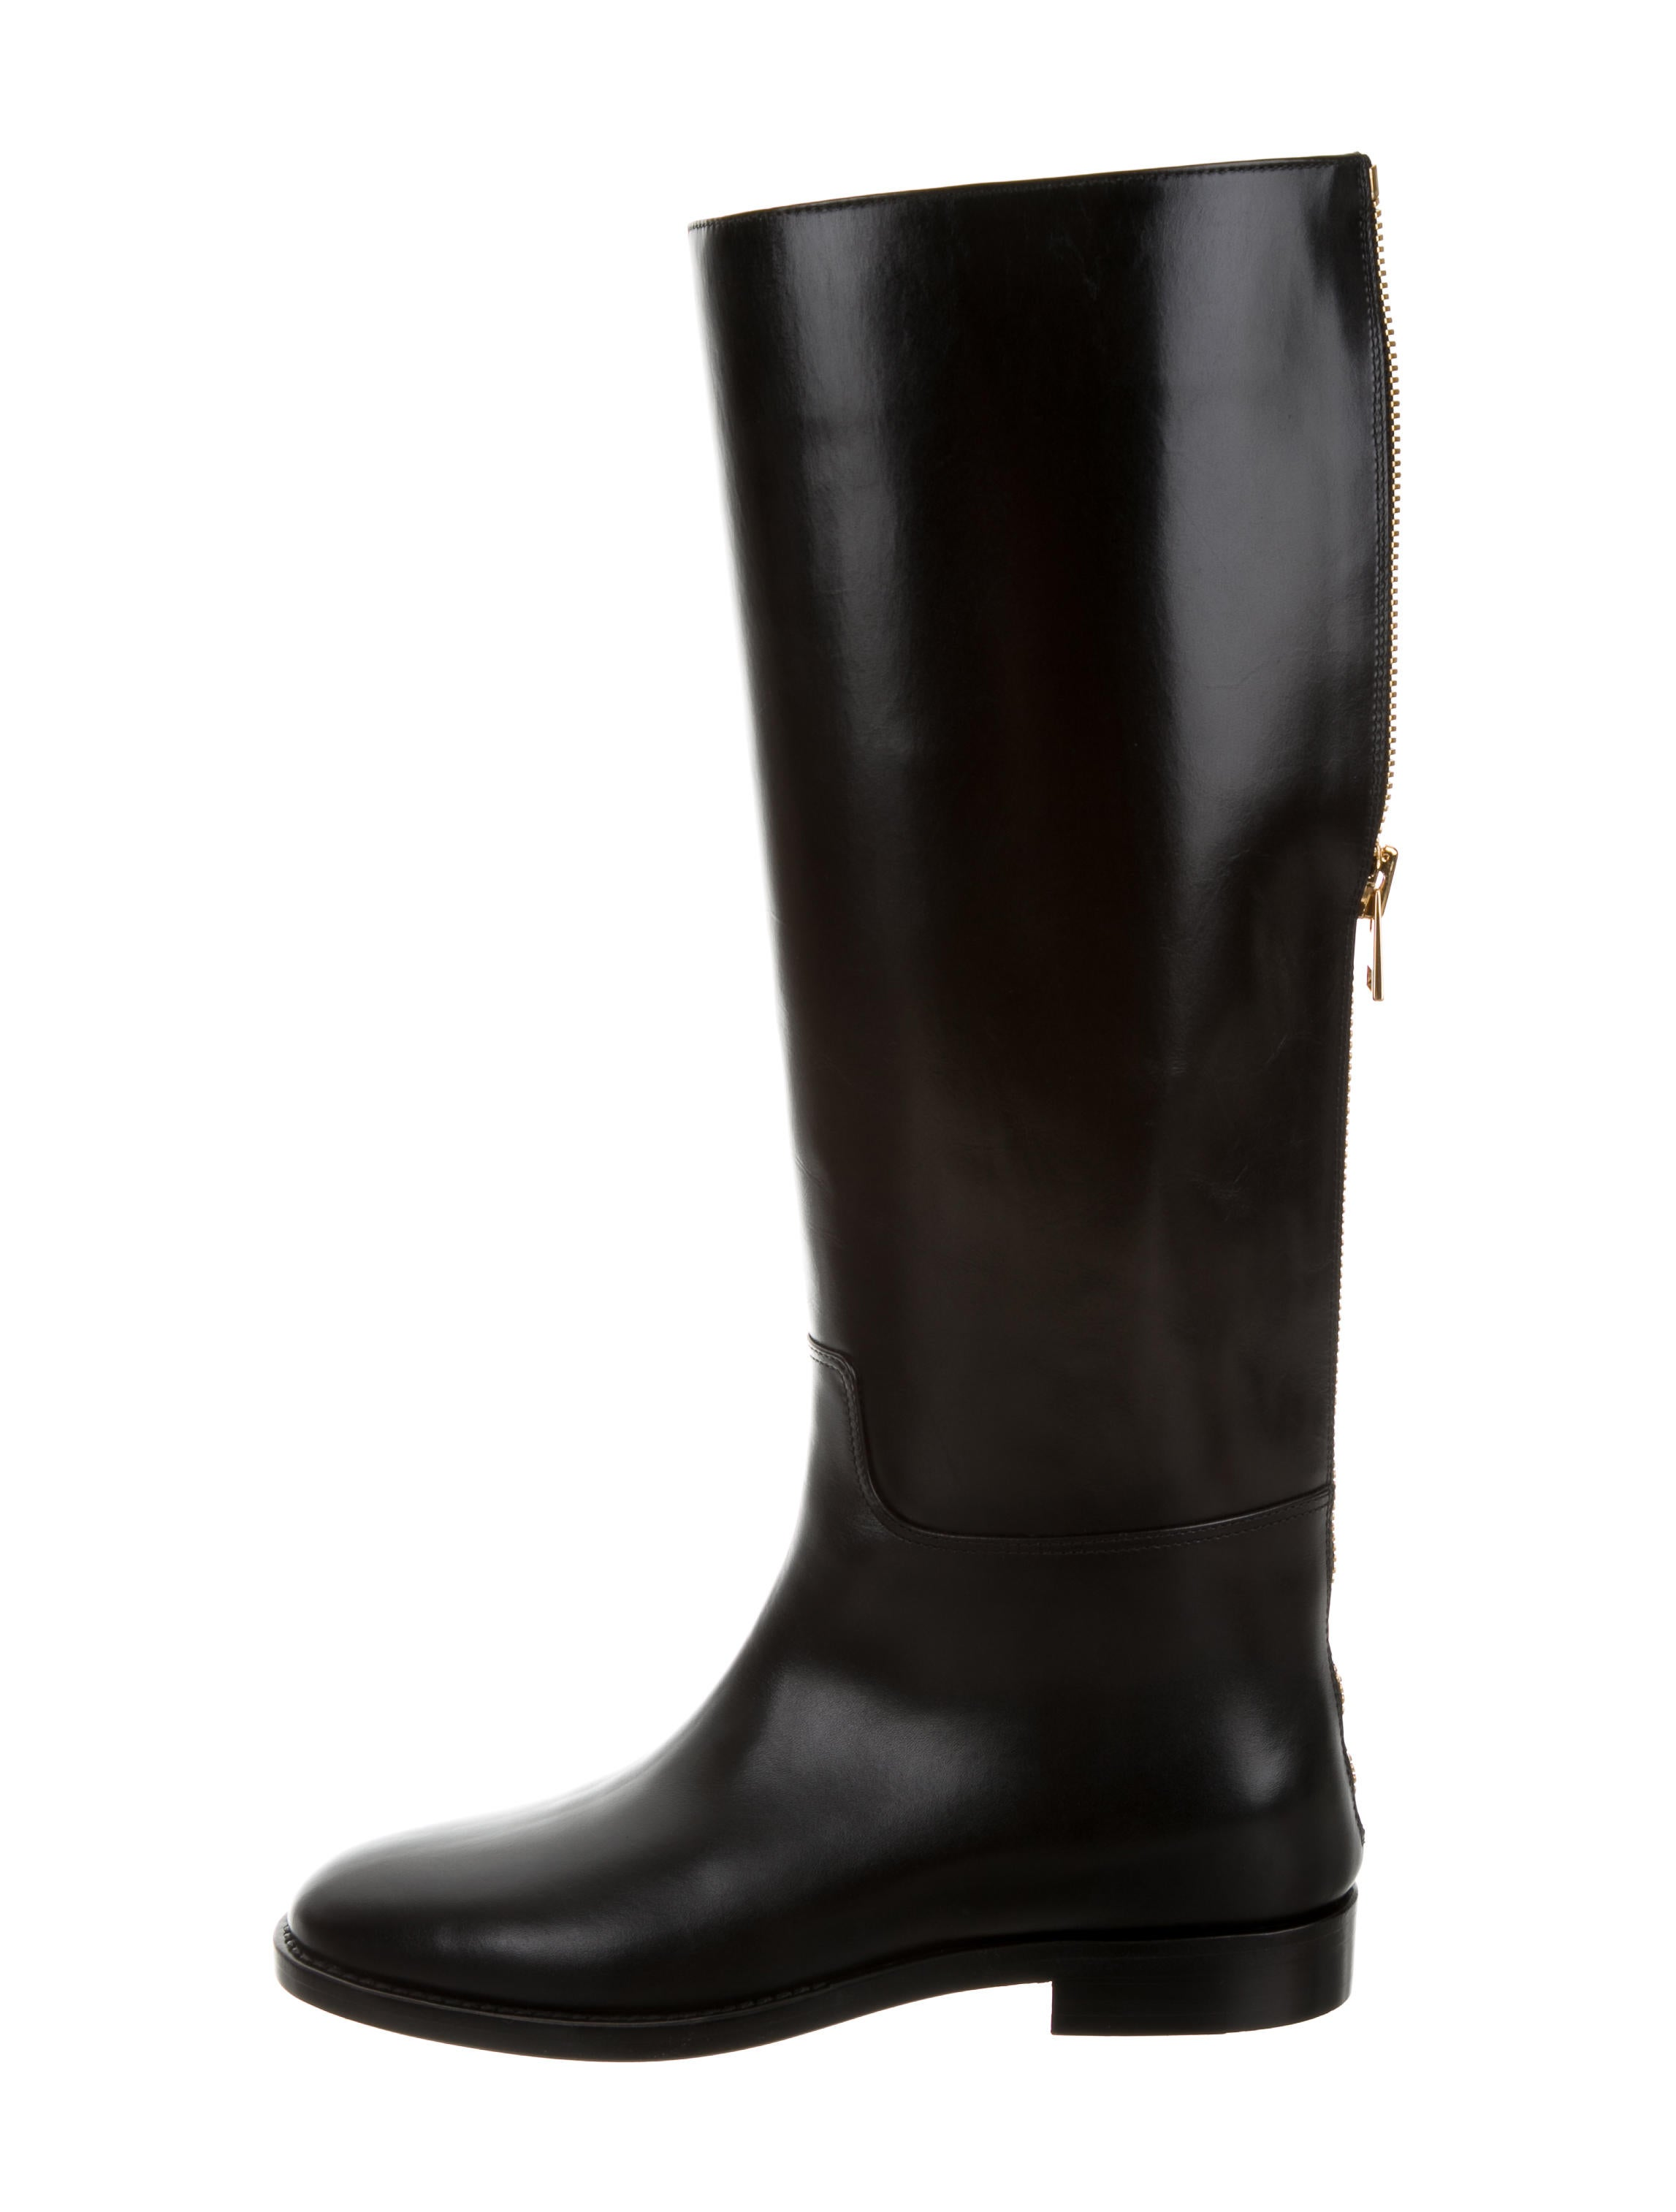 tom ford leather knee high boots w tags shoes